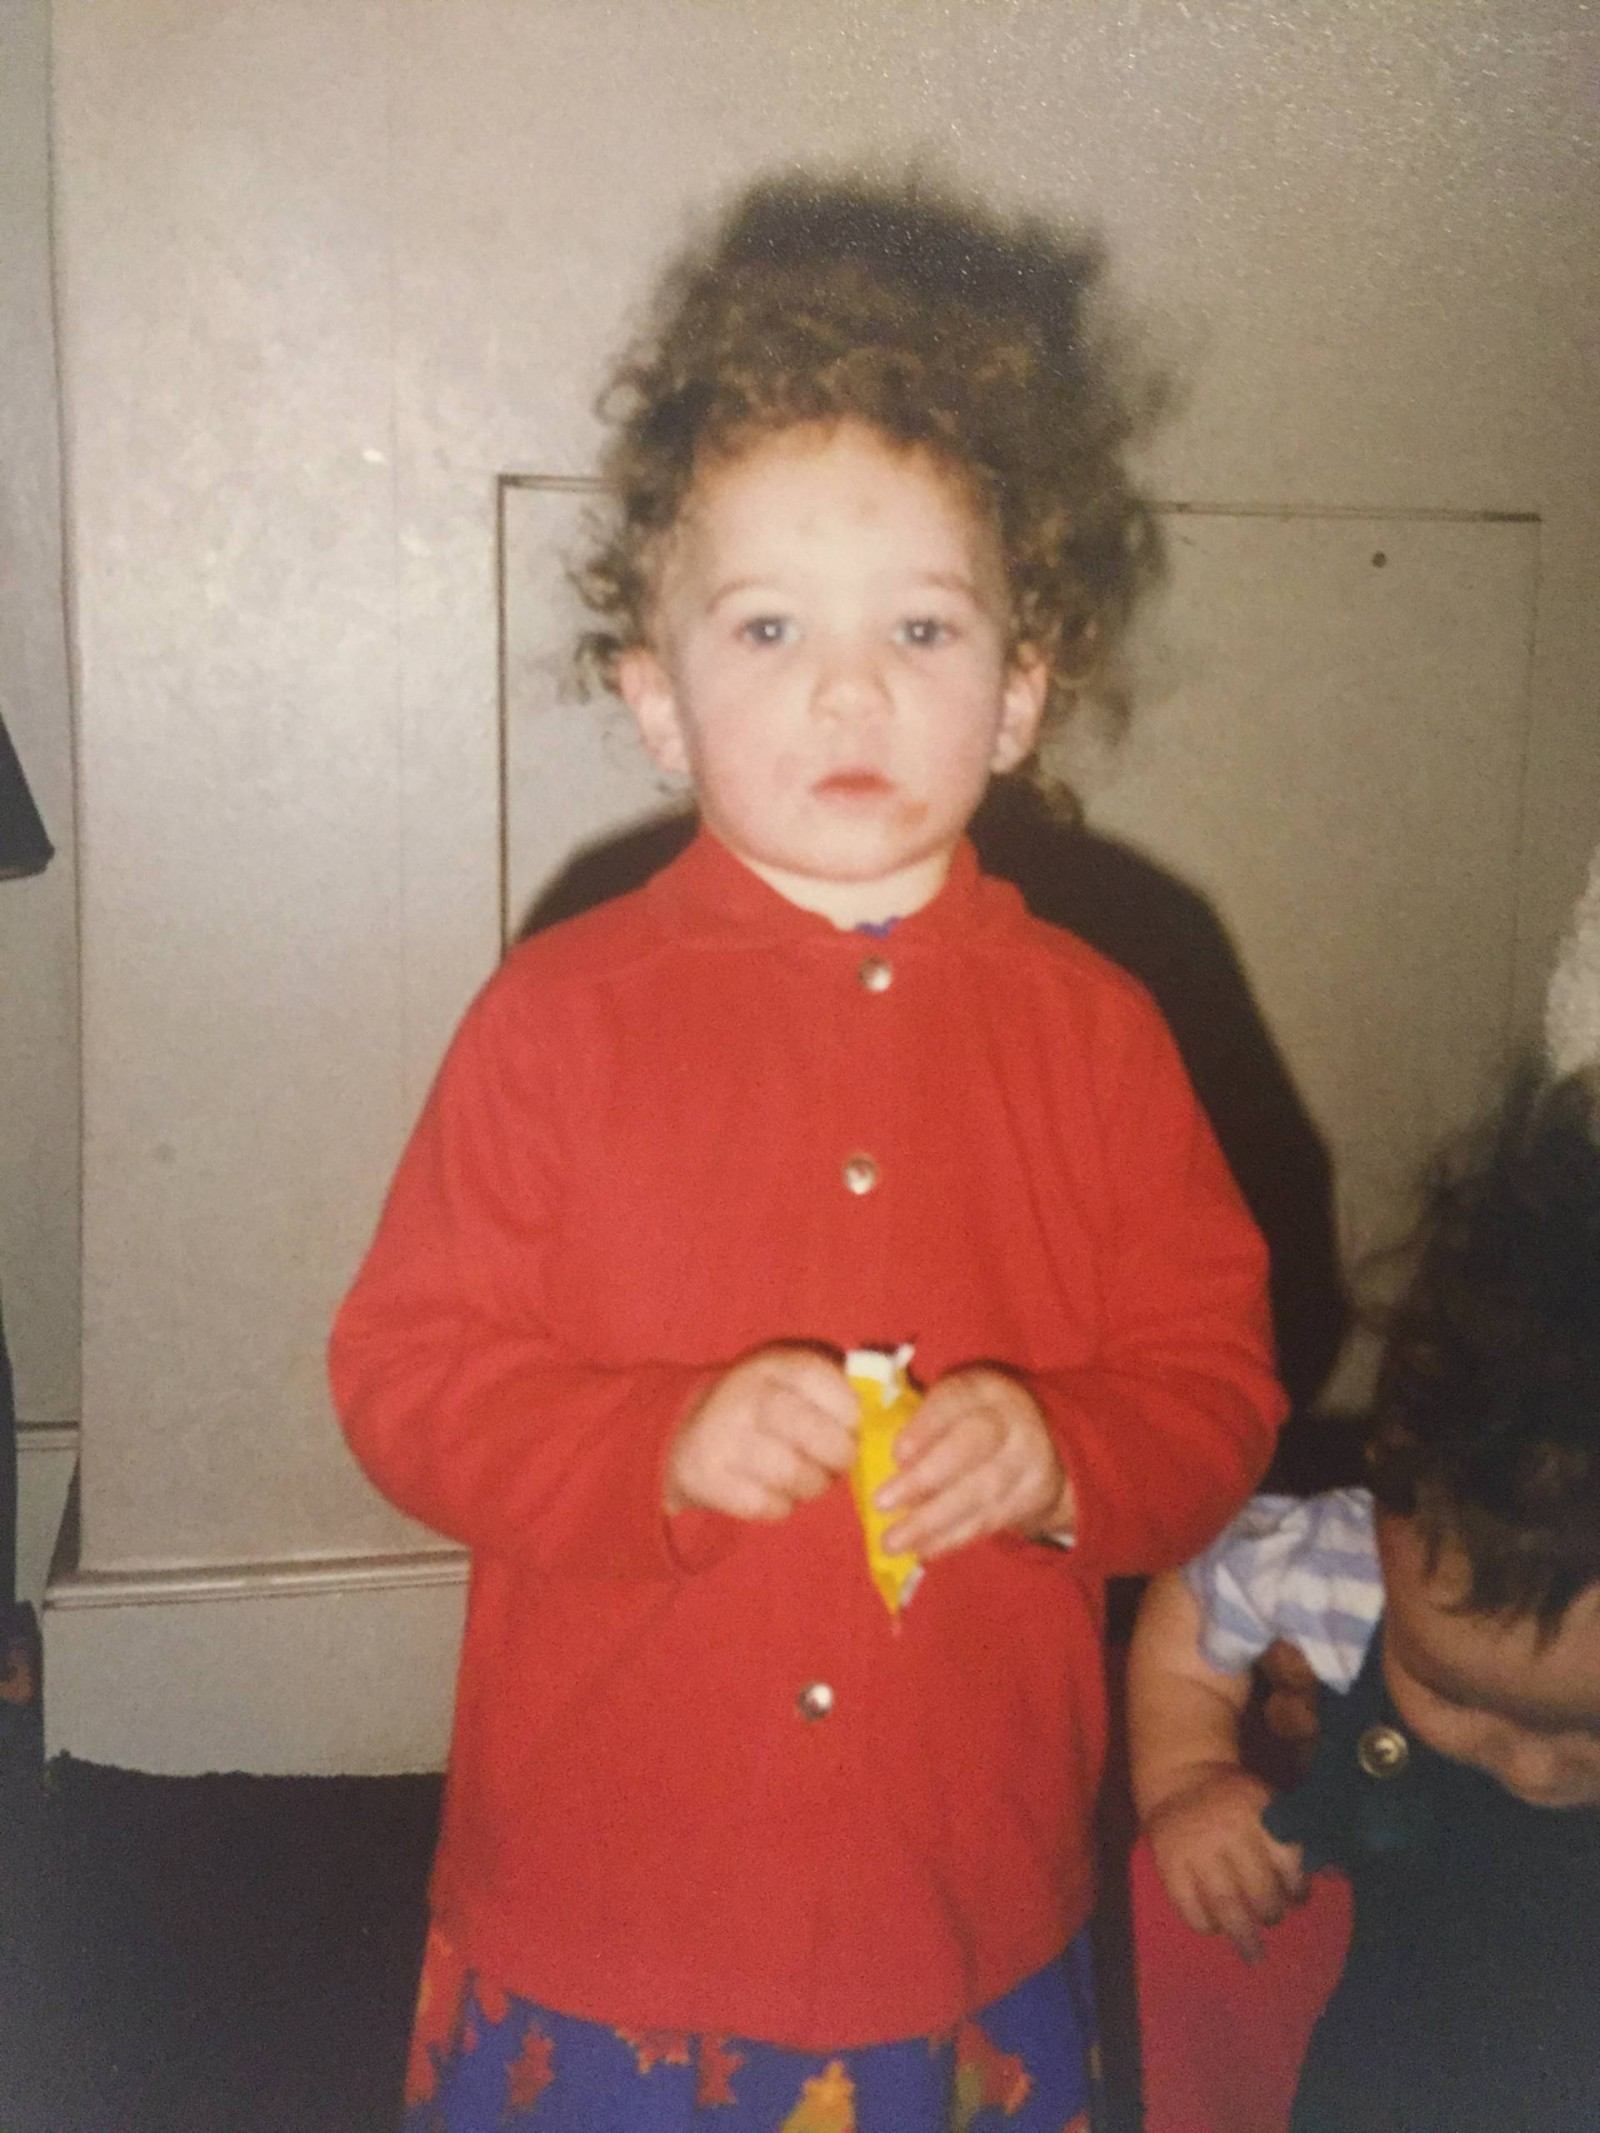 red shirt and curls outfit